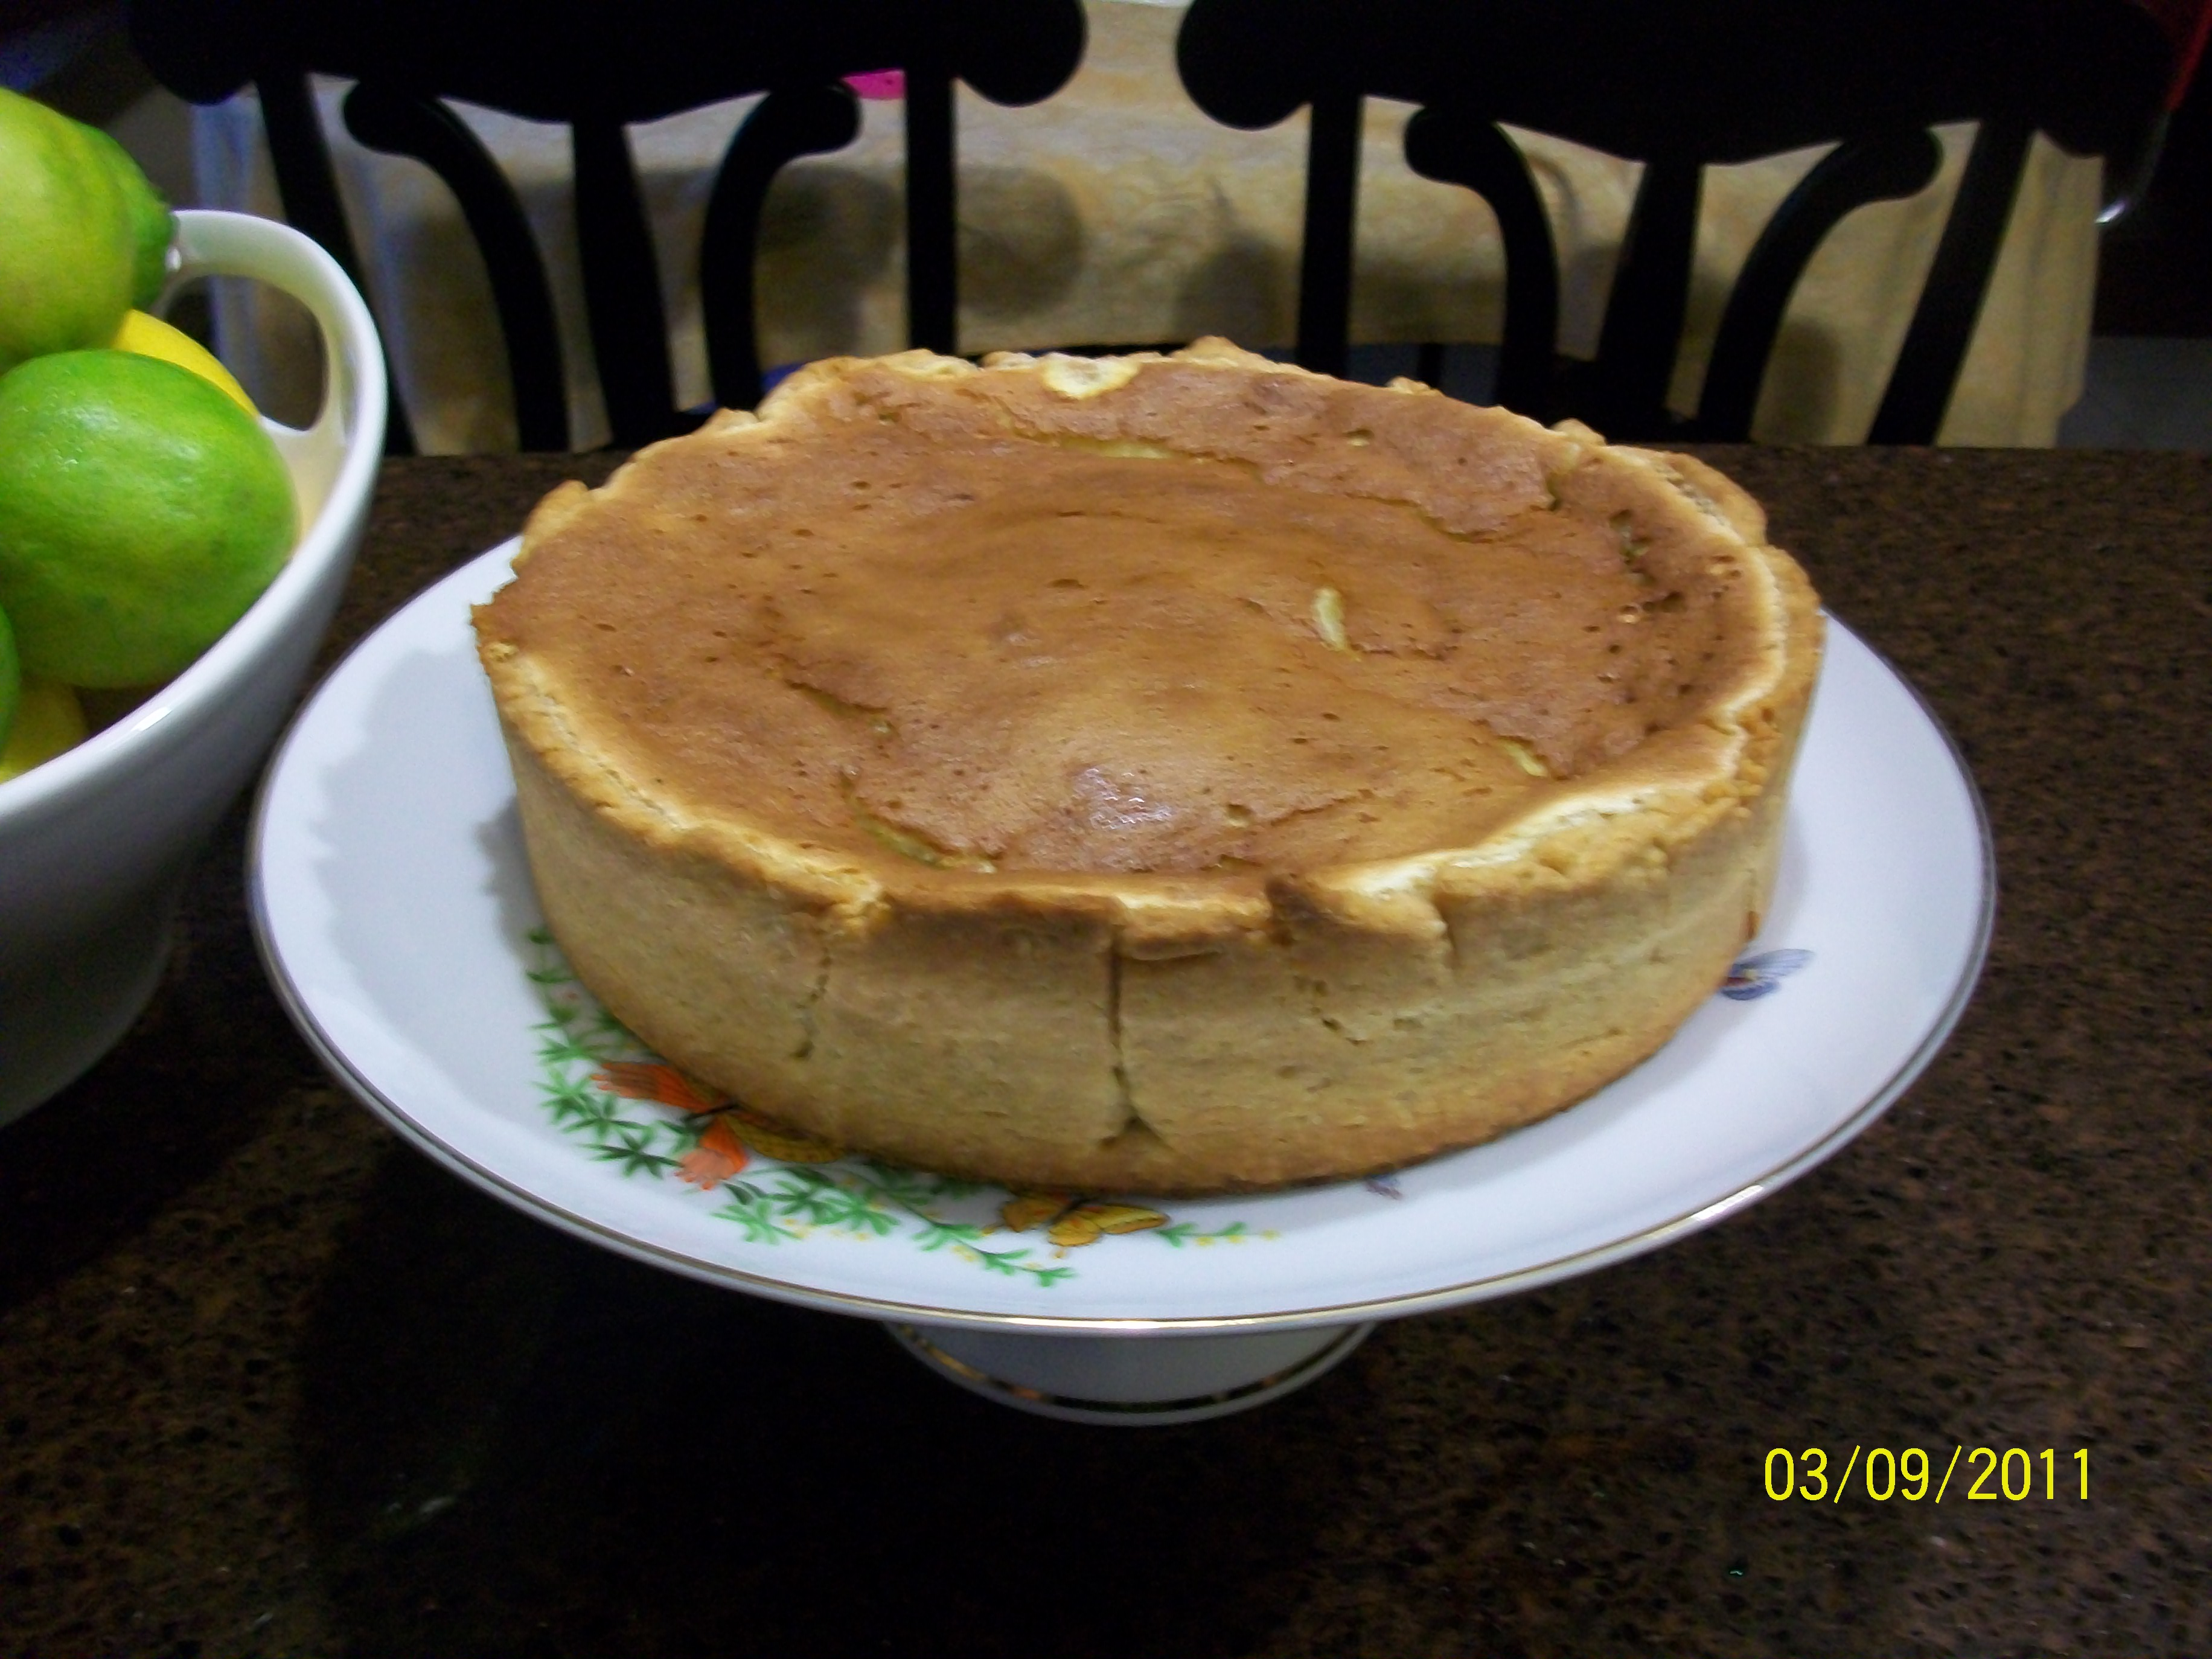 LLBT- Lemon Lime Souffle Blueberry Tart